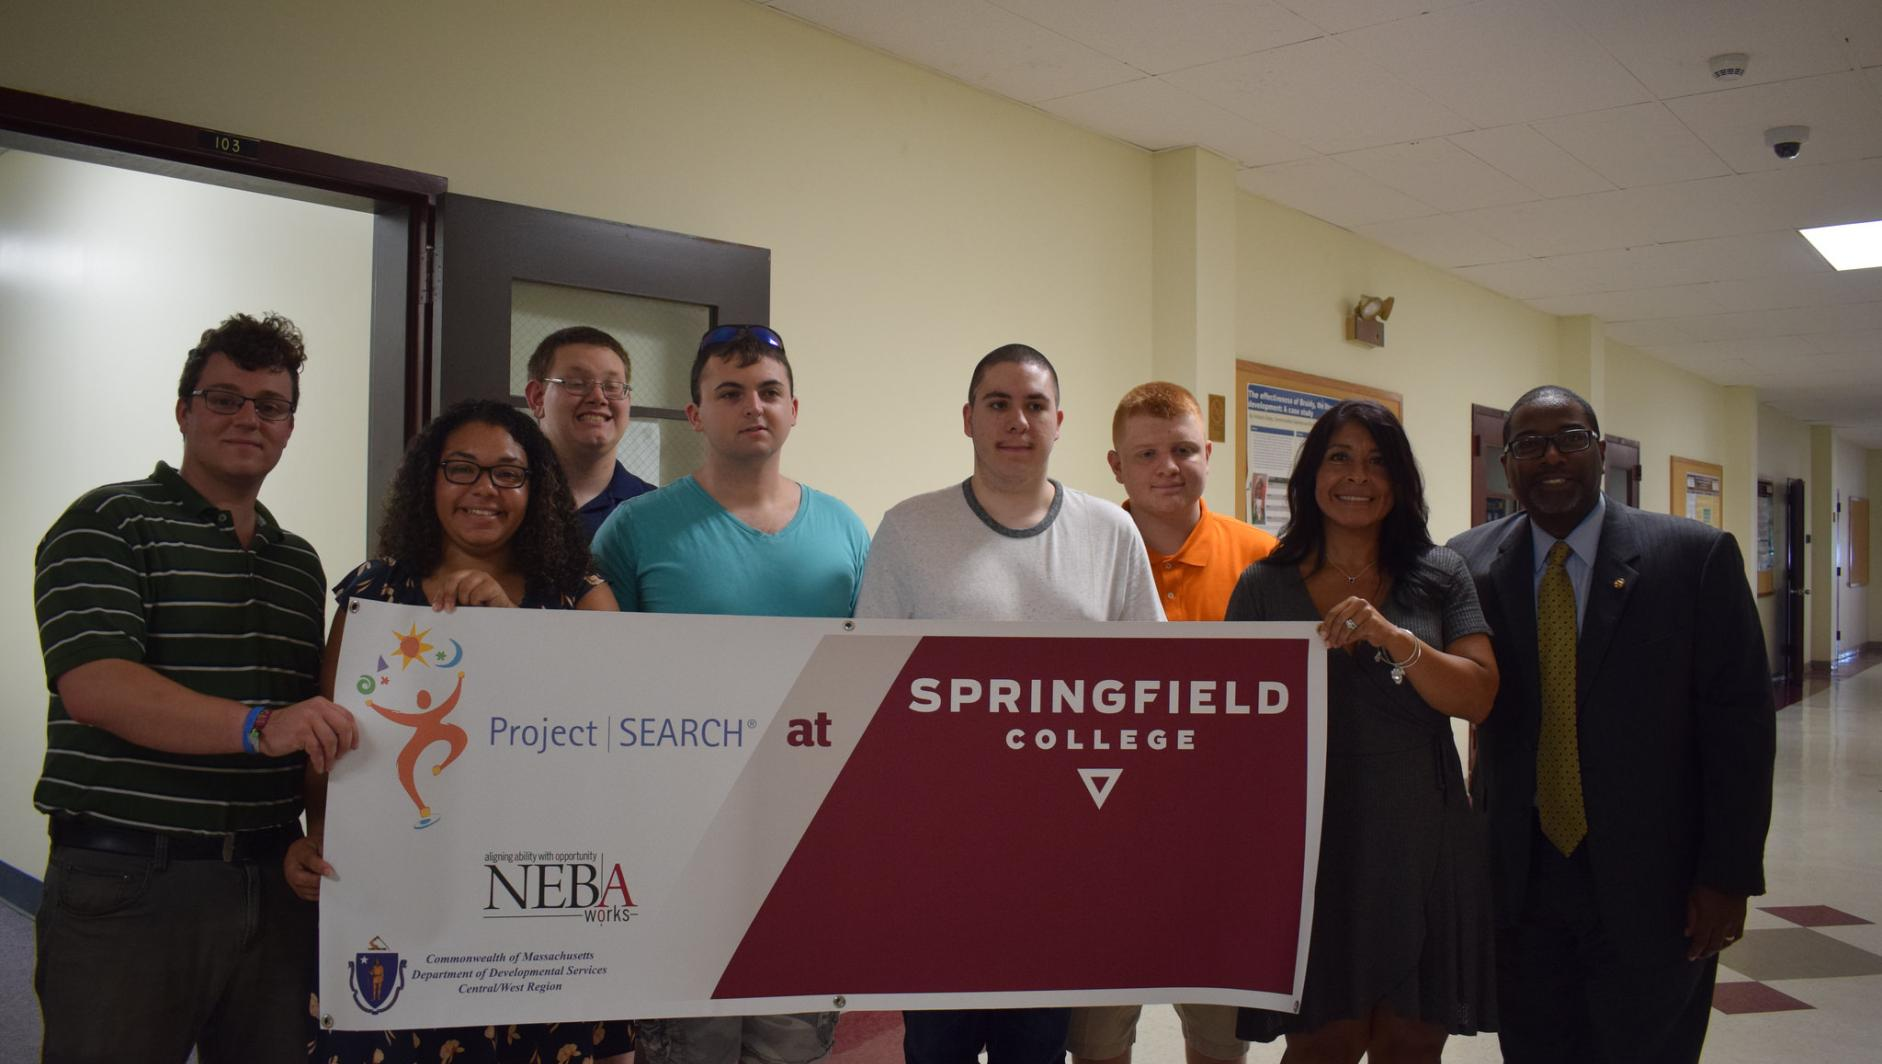 Project Search participants and staff stand with the banner.